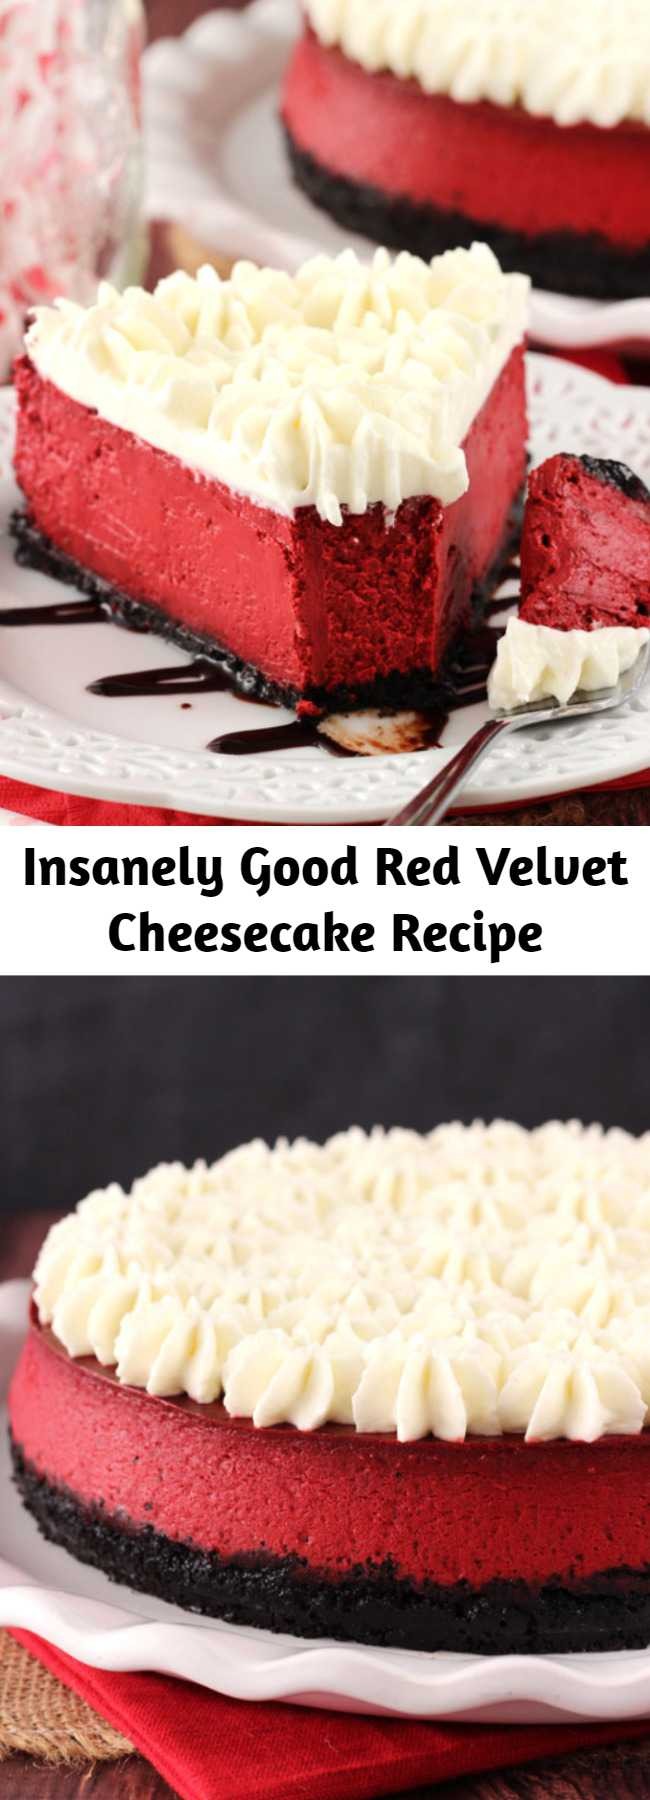 Insanely Good Red Velvet Cheesecake Recipe - This Red Velvet Cheesecake is one of the smoothest and creamiest cheesecakes I've ever made. It's insanely good and has that light tanginess that's so loved in a red velvet dessert. The cream cheese whipped cream topping finishes it off perfectly!